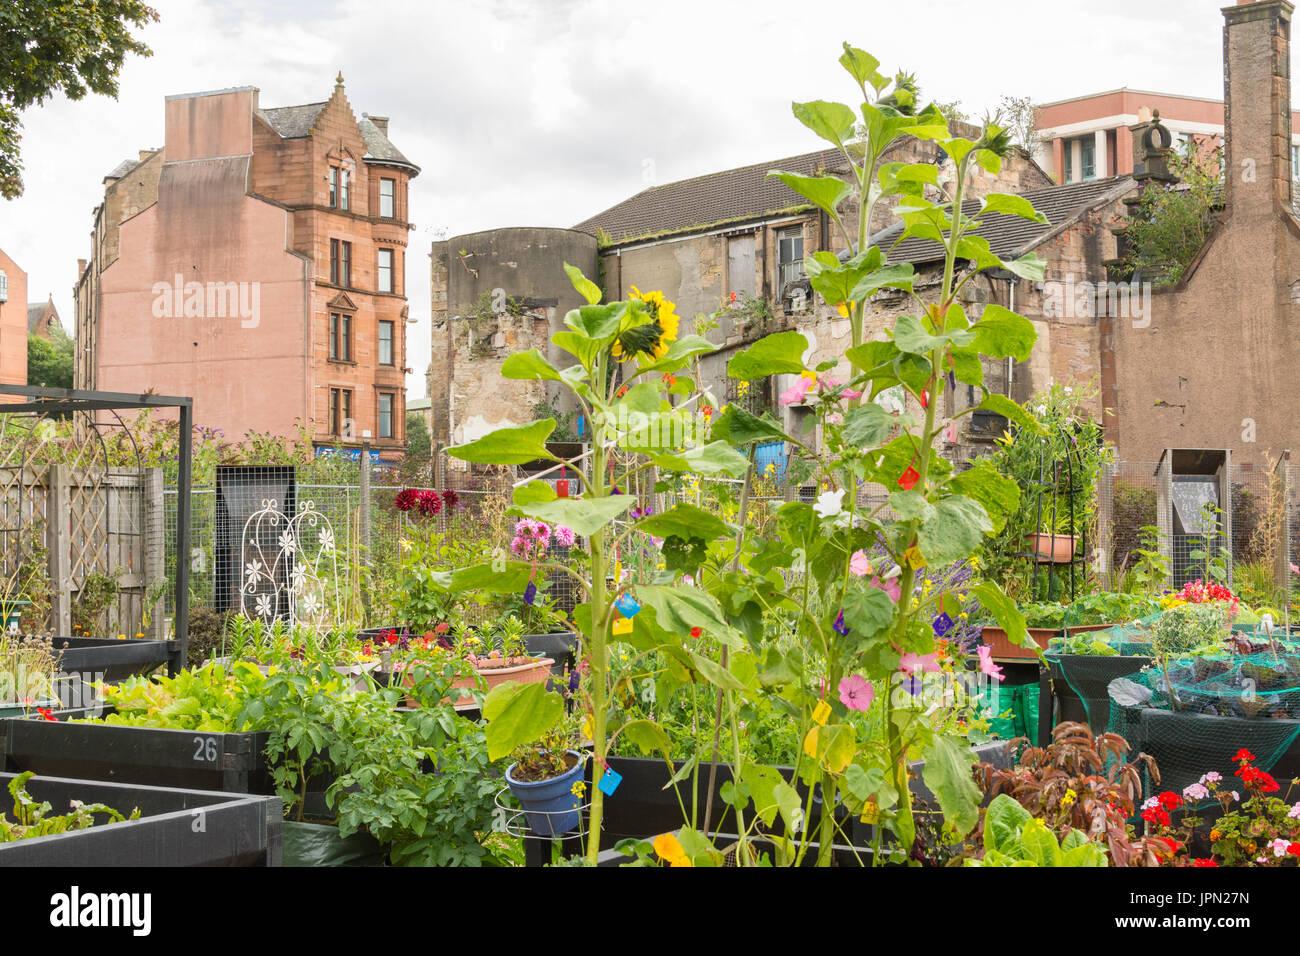 Greyfriars Garden a Stalled Spaces community garden, Merchant City area of Glasgow, Scotland,UK - Stock Image